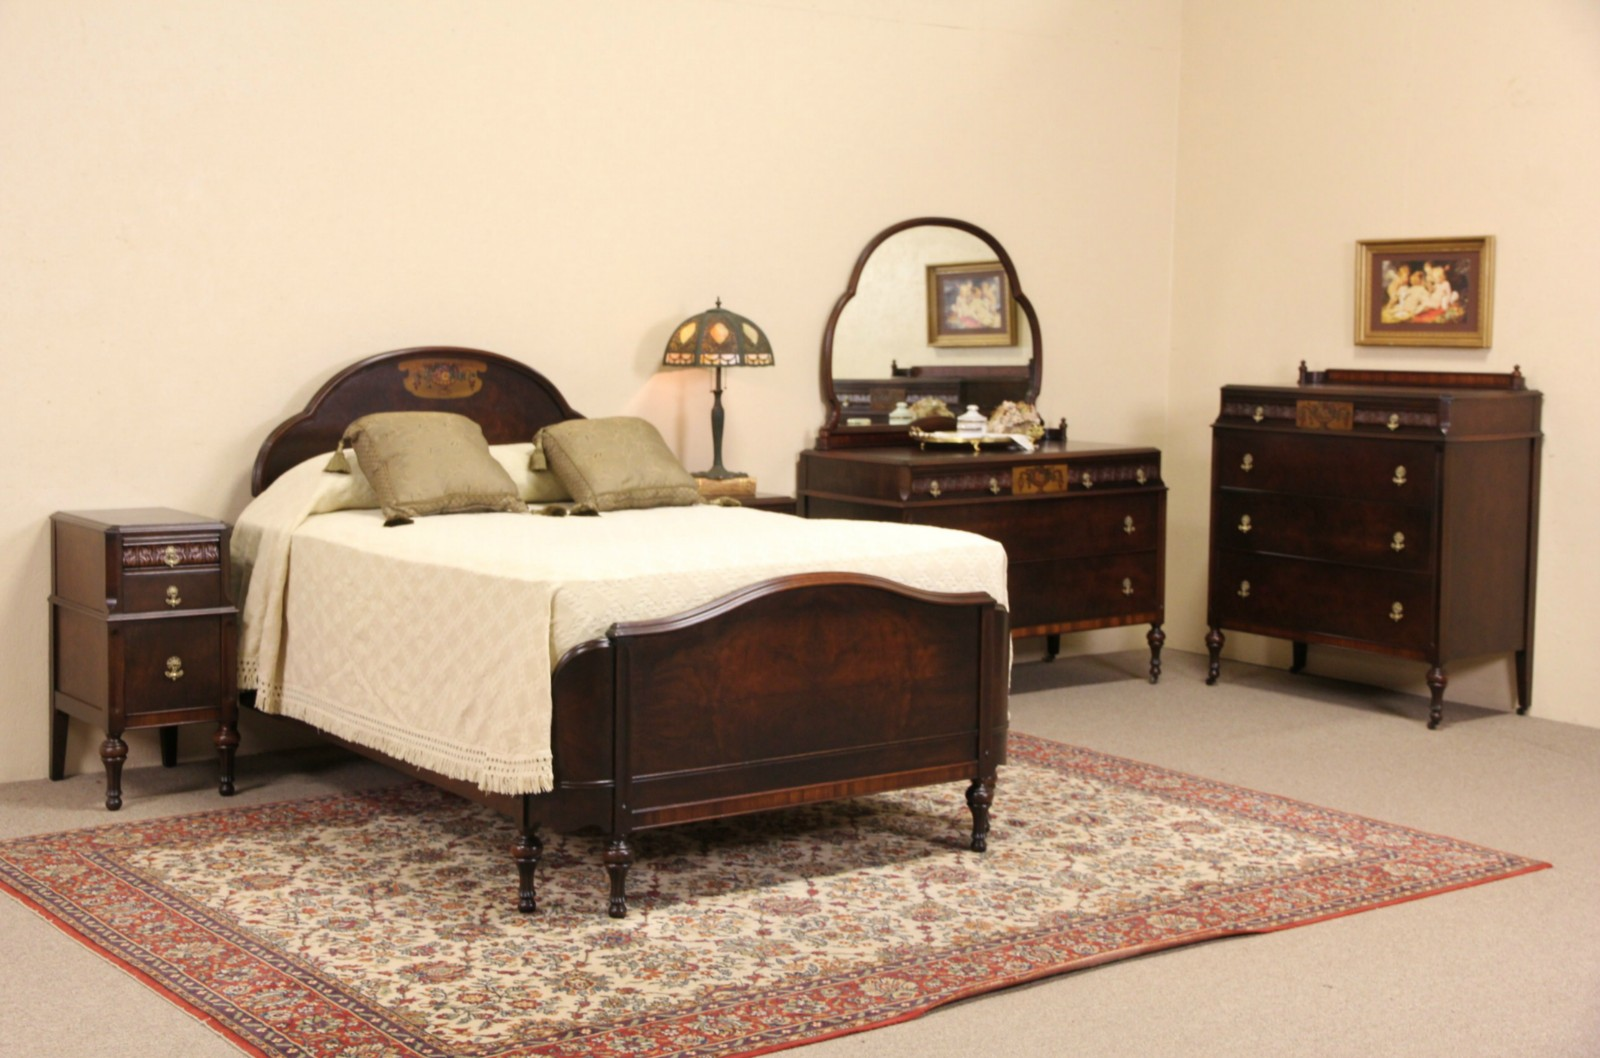 SOLD Hand Painted & Walnut 1920 Antique 5 Pc Bedroom Set Full Size Be